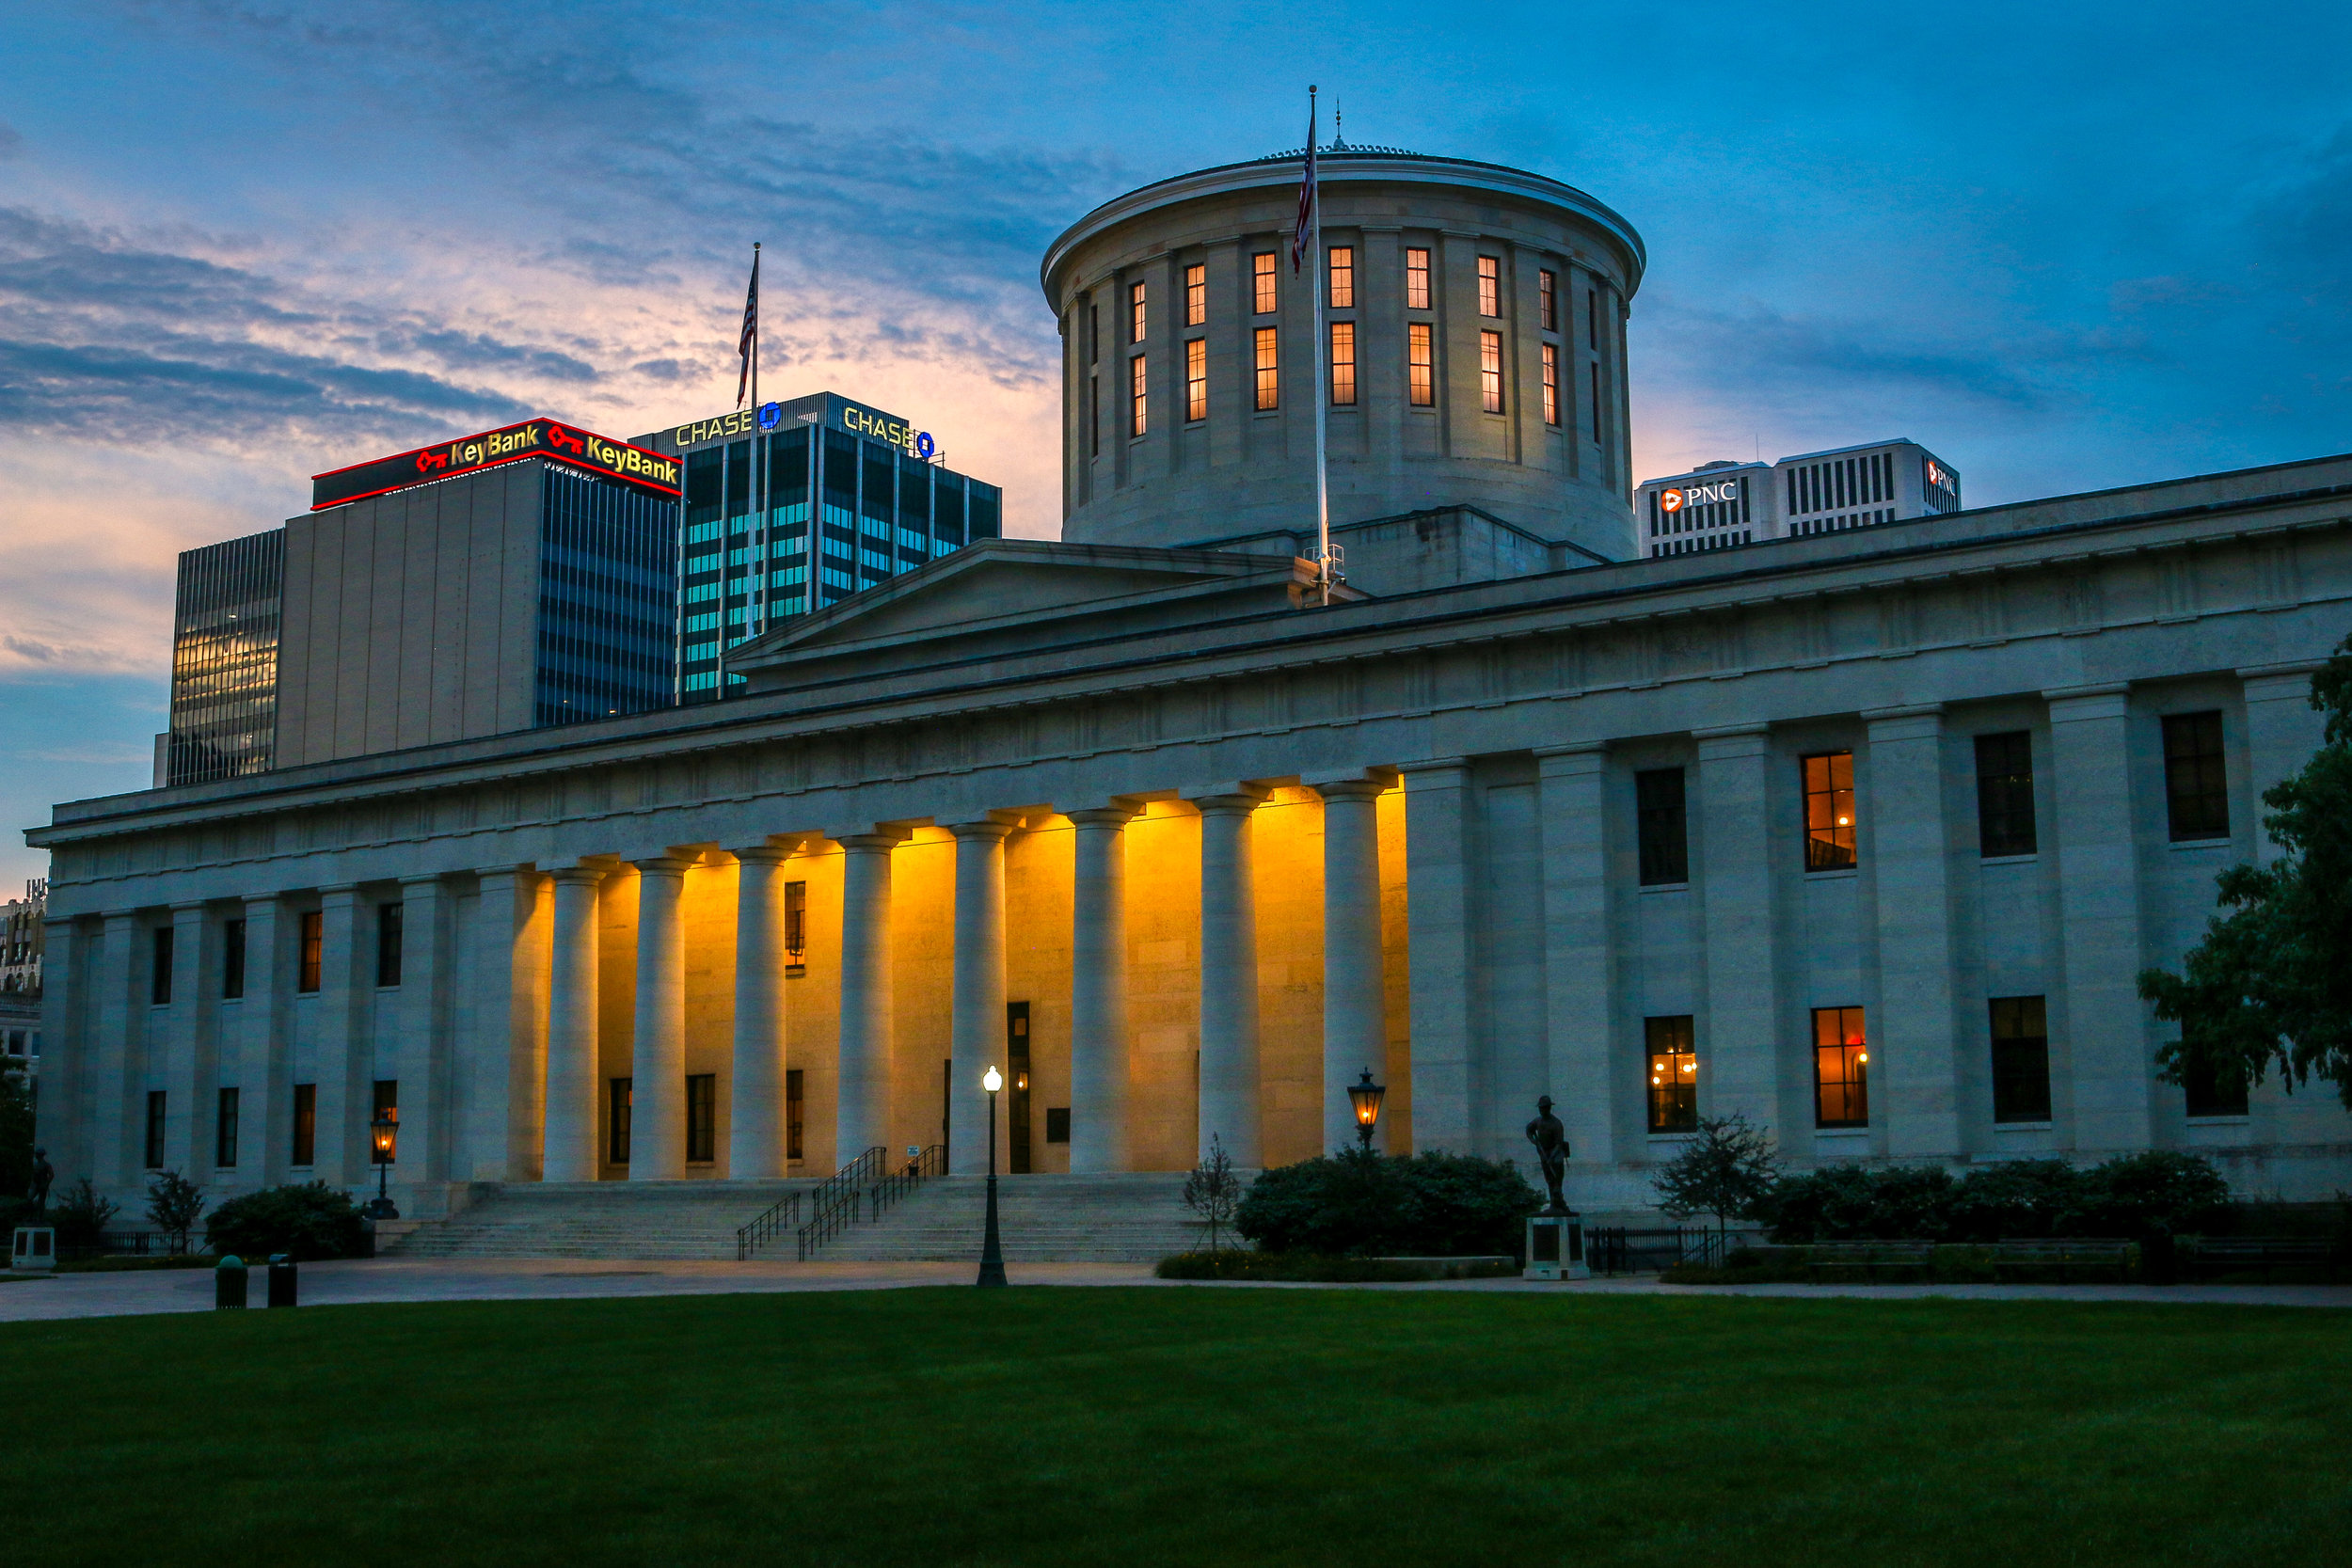 Ohio Statehouse at Dusk